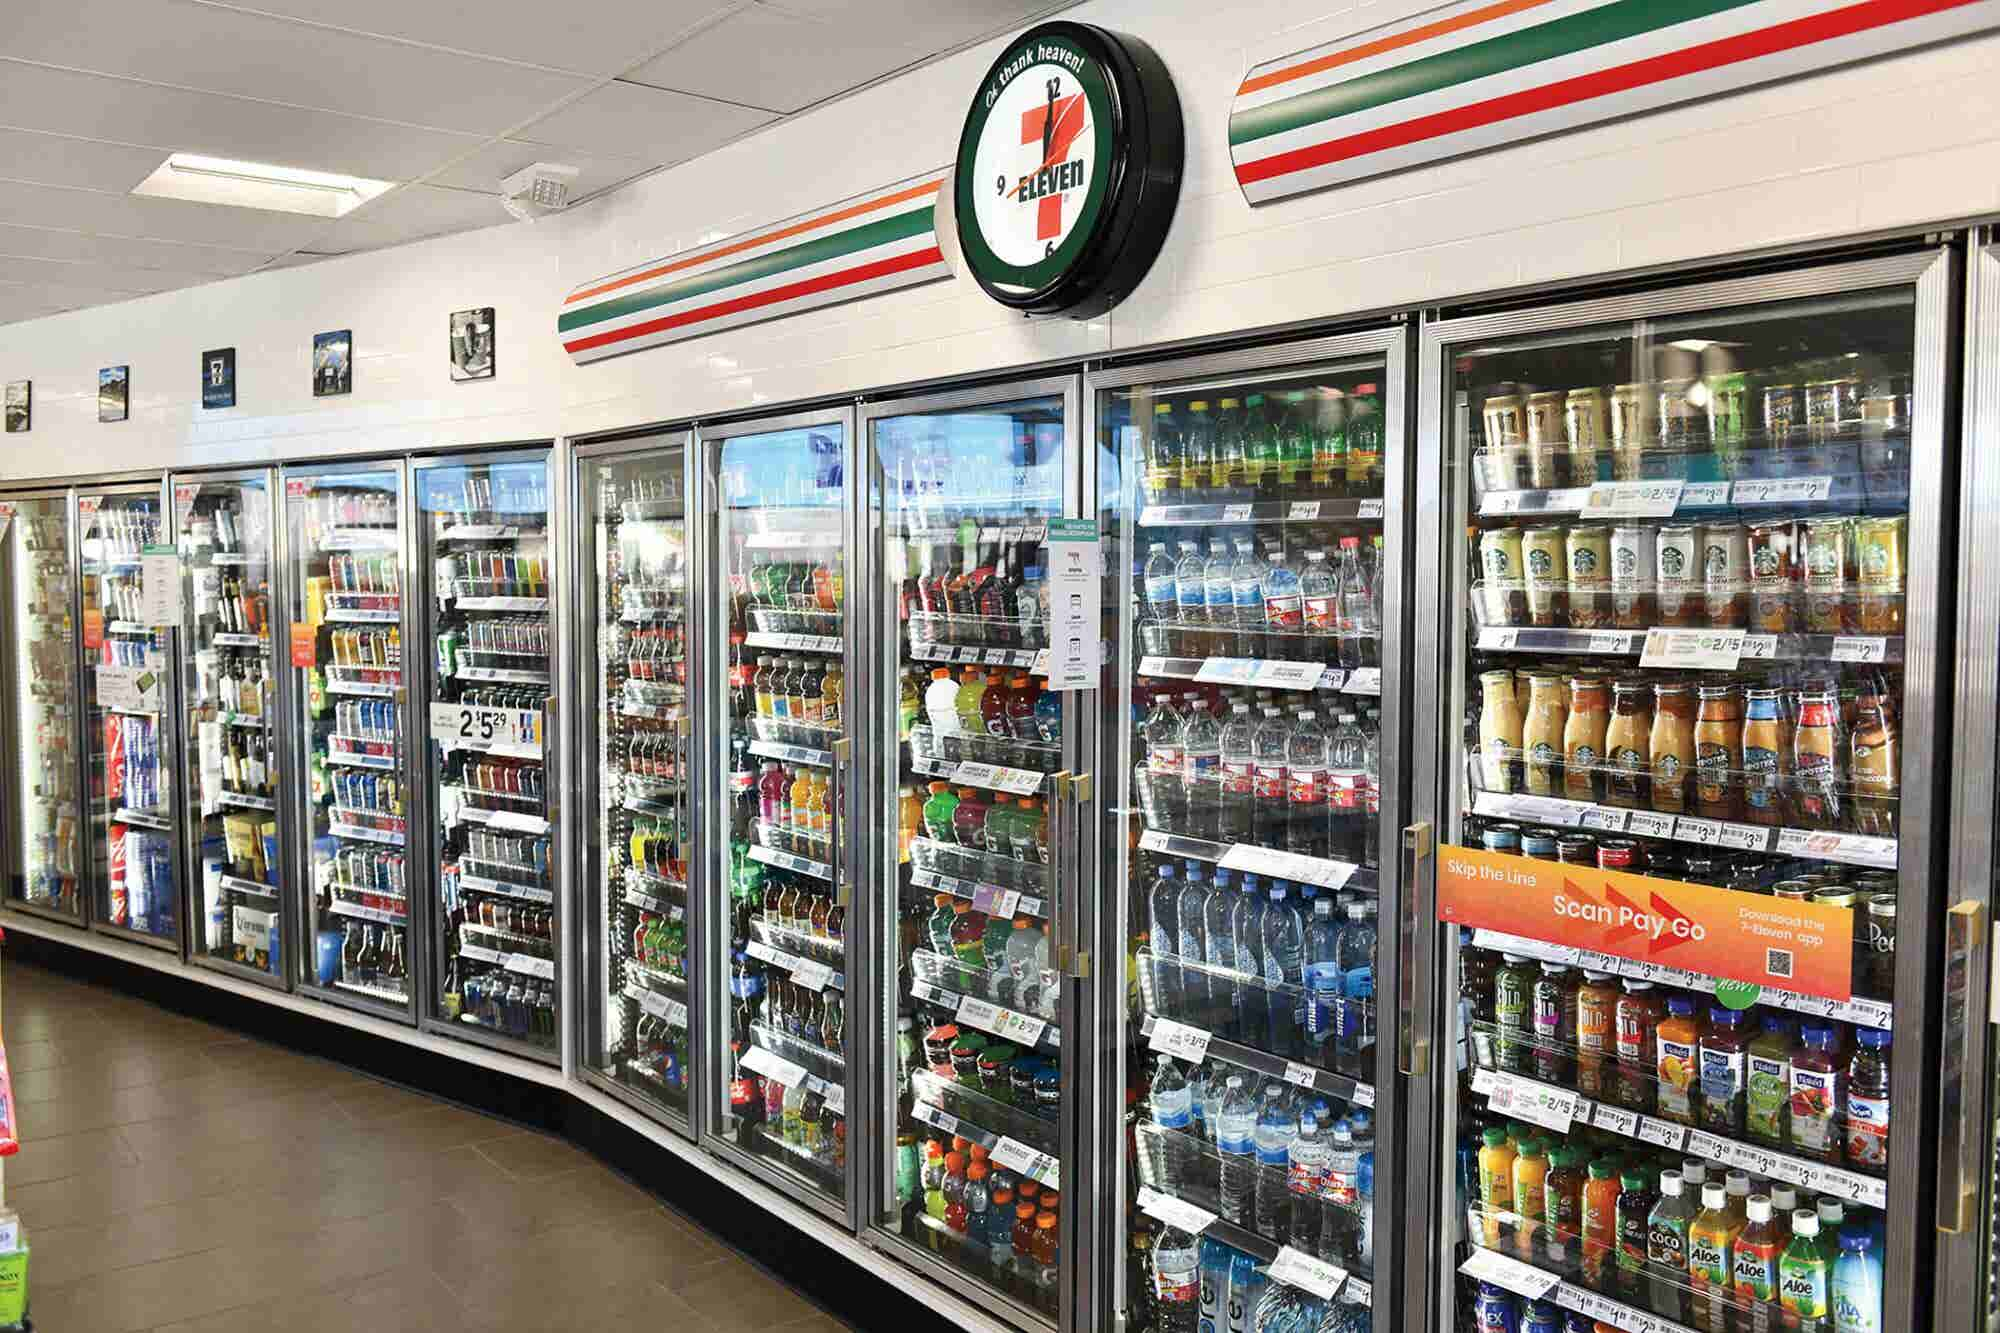 #10 on the Franchise 500: How 7-Eleven Plans to Double In Size In the U.S. By 2027